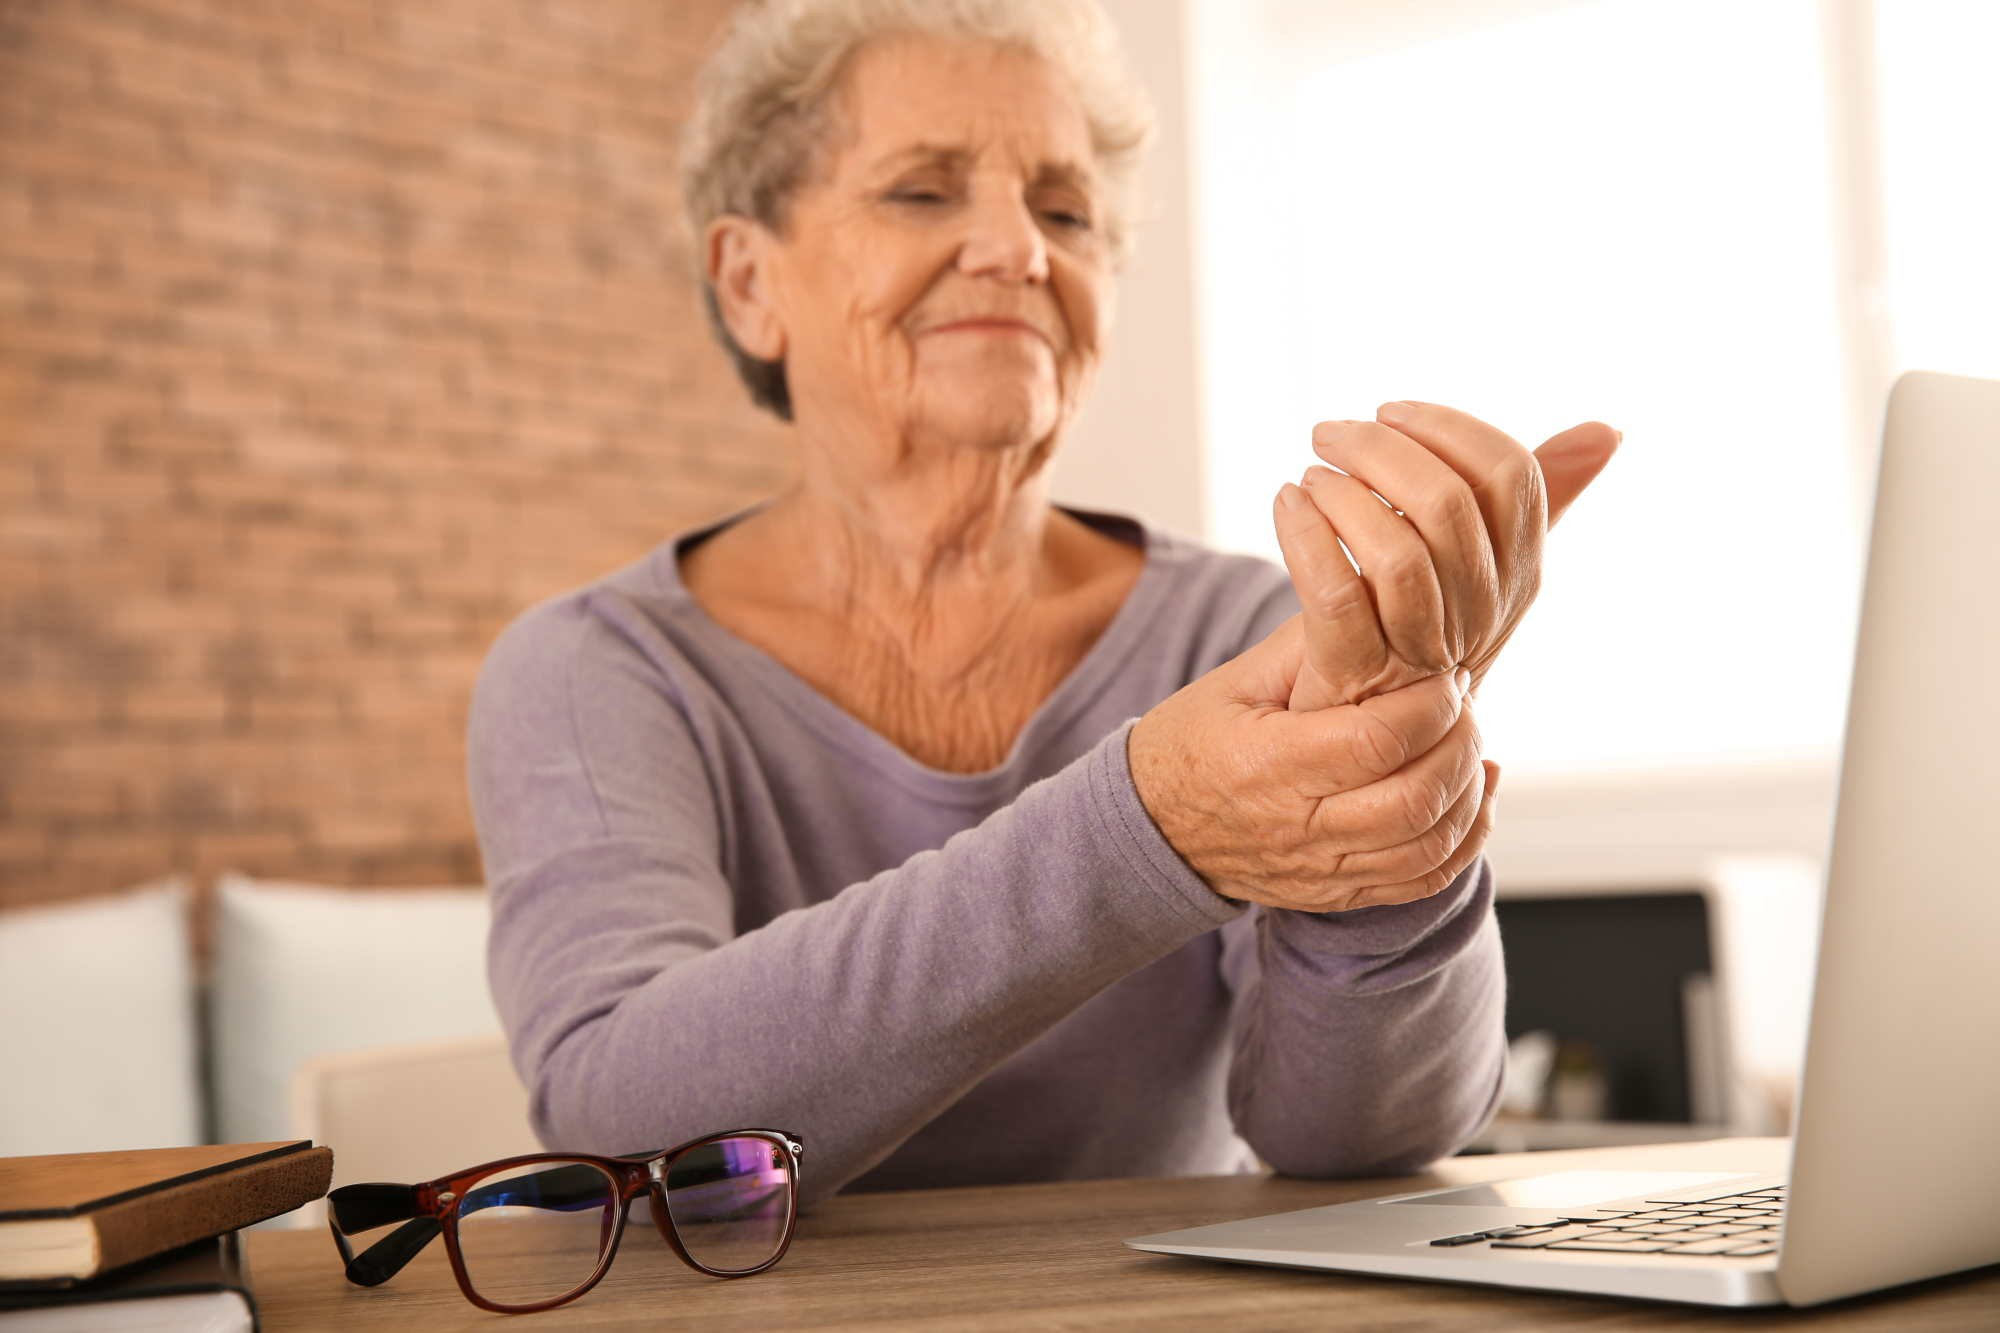 Eight ways to move and live better with arthritis